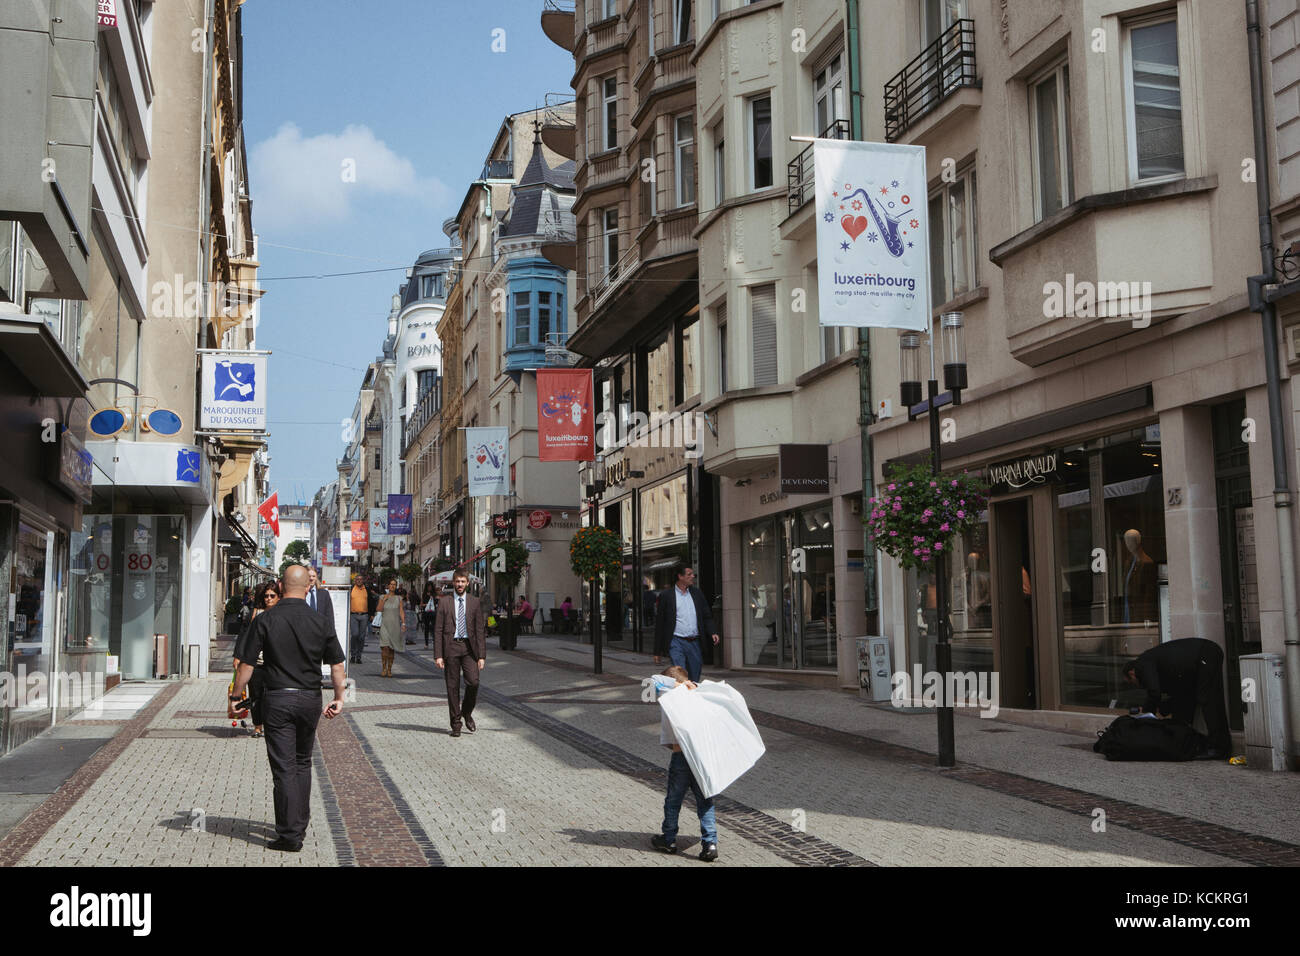 Just another day in Luxembourg, fast paced with a wide array of shops and sights delight any tourist. - Stock Image